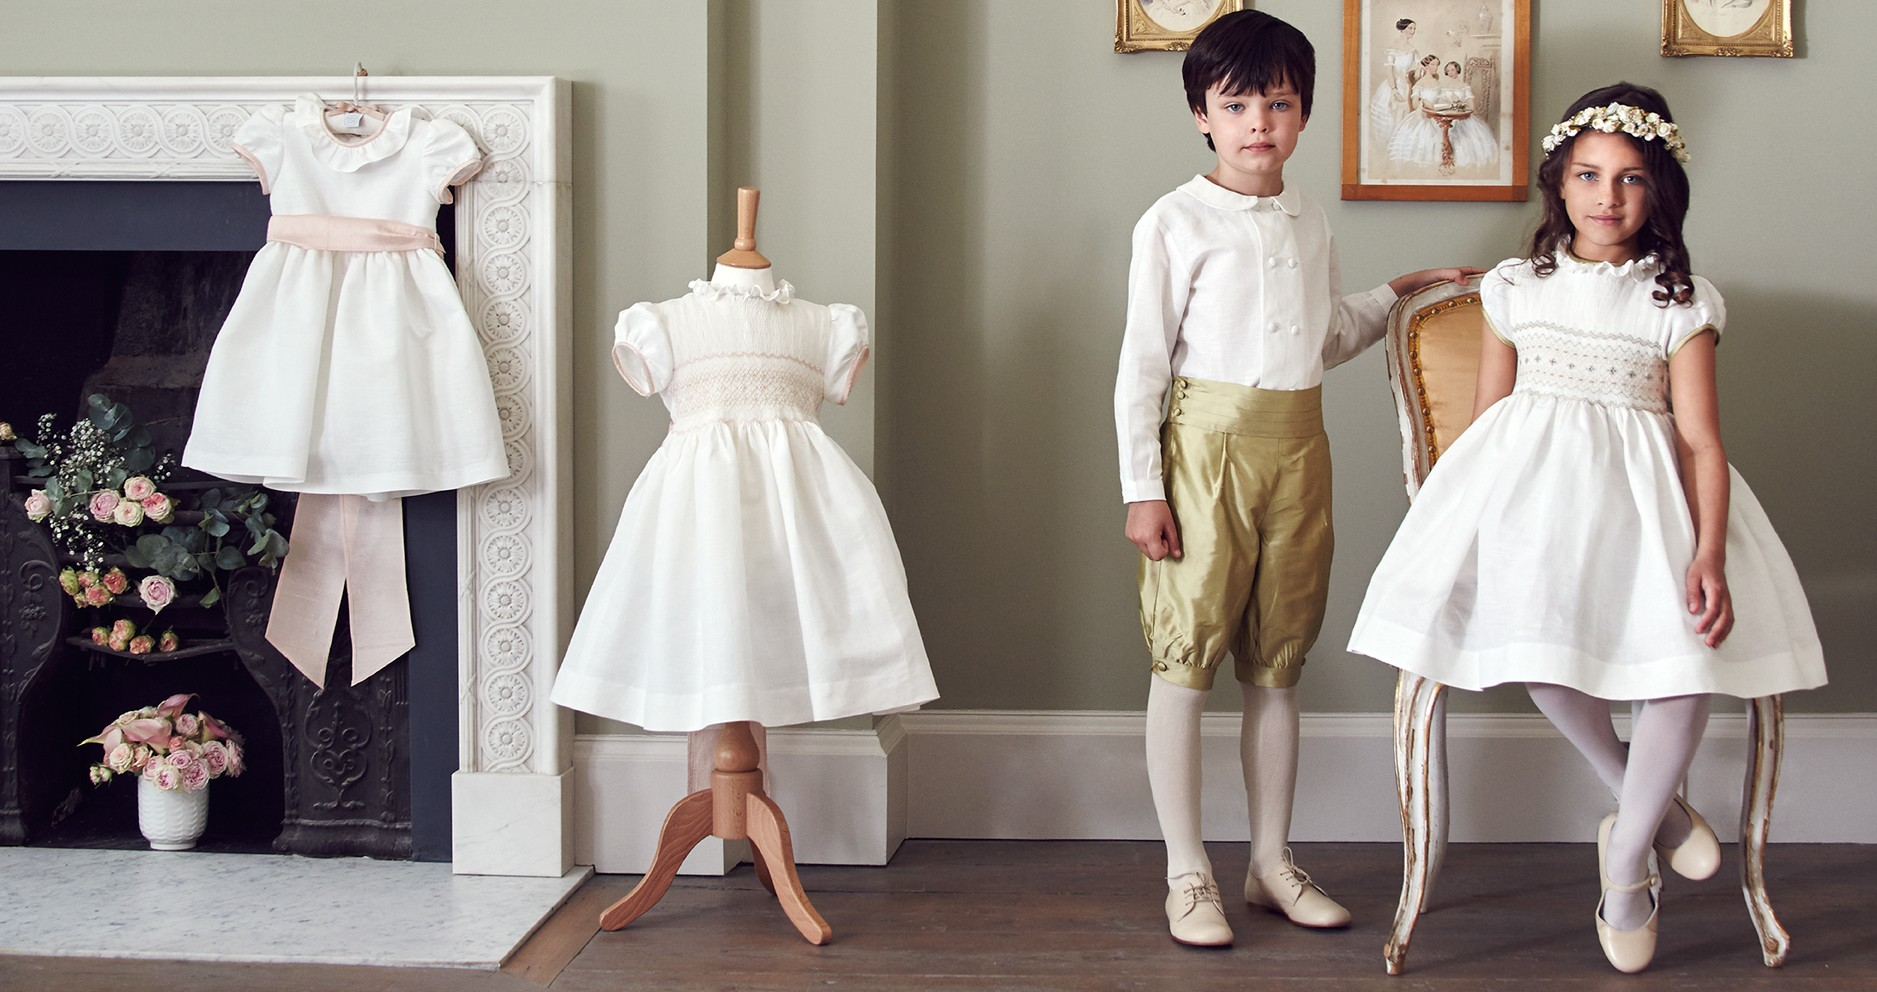 Items from the Celebration collection. Pageboy's silk knickerbockers, £94; boy's double-breasted shirt, £89; girl's occasion smocked dress, £340.